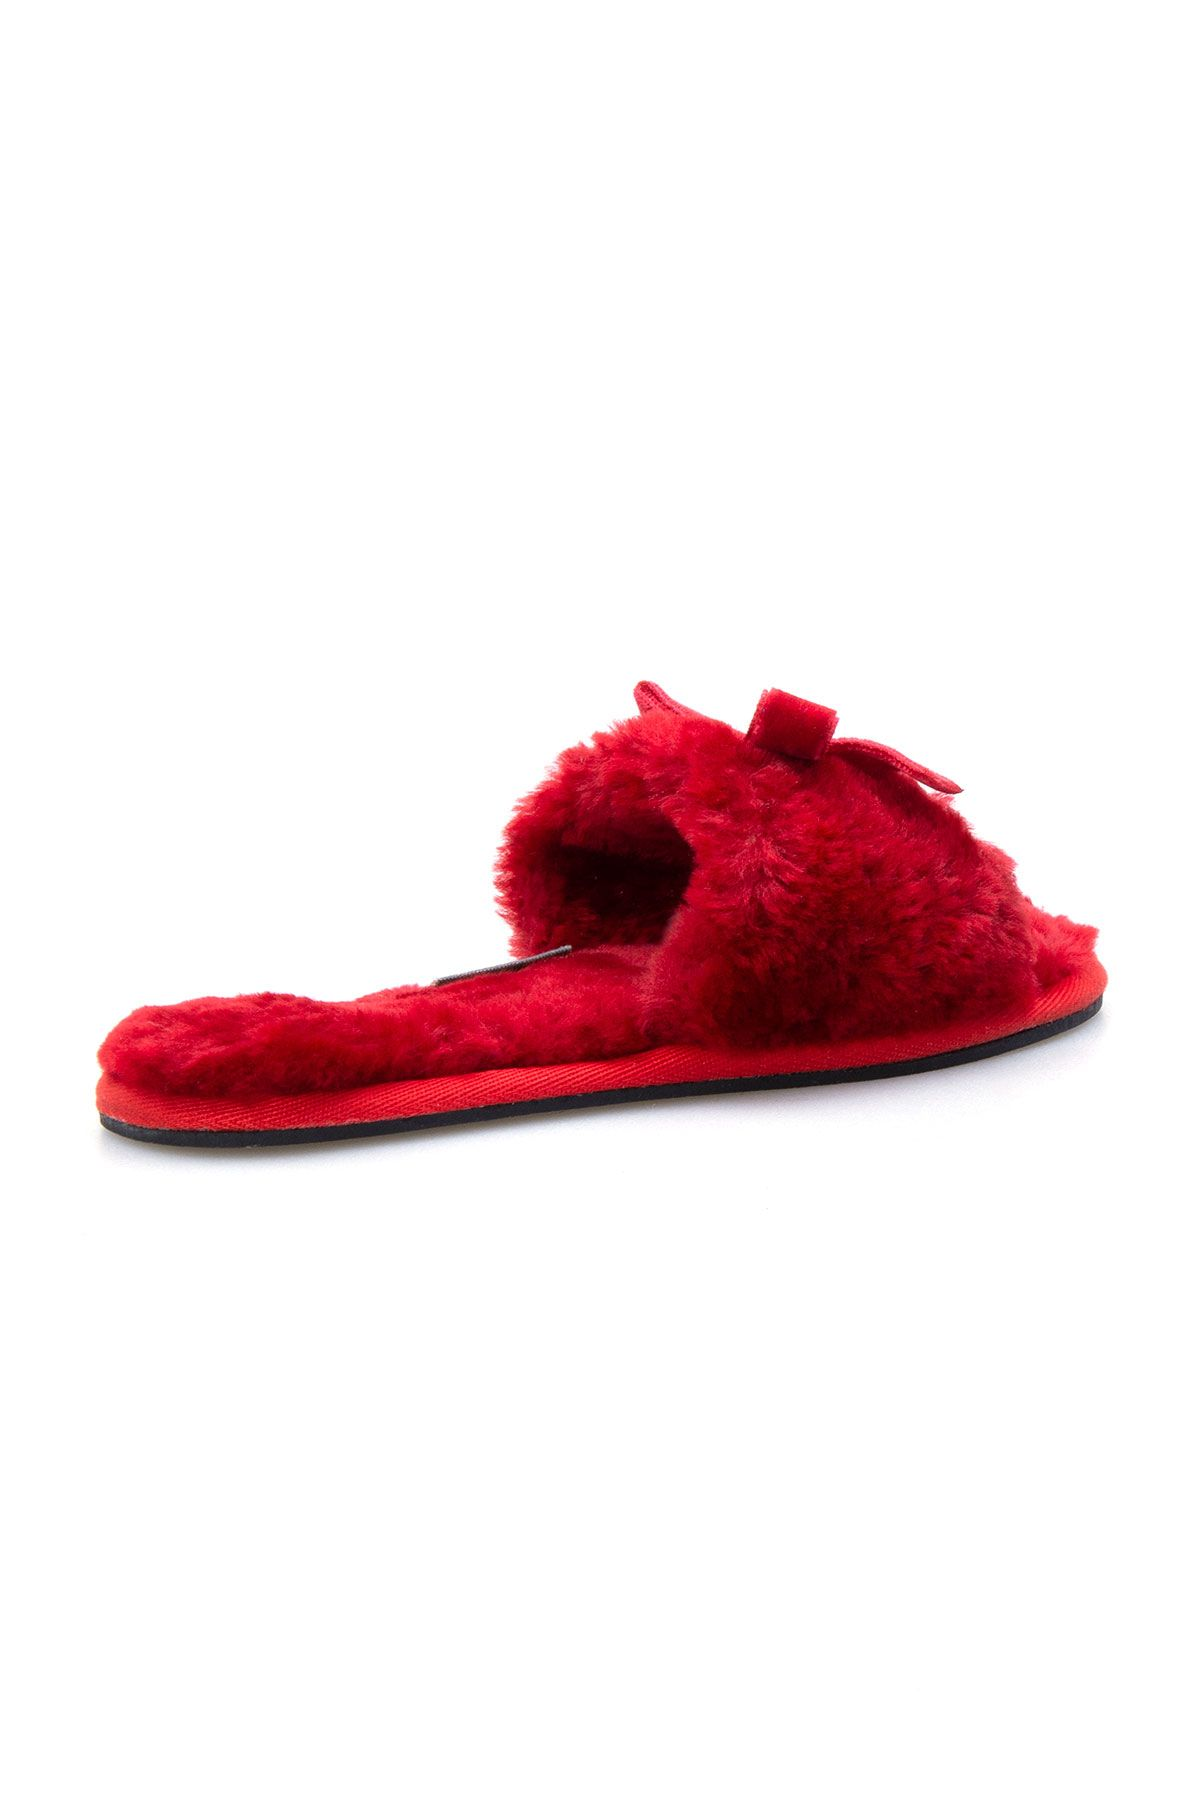 Pegia Women Shearling Slippers With Bow 191093 Red